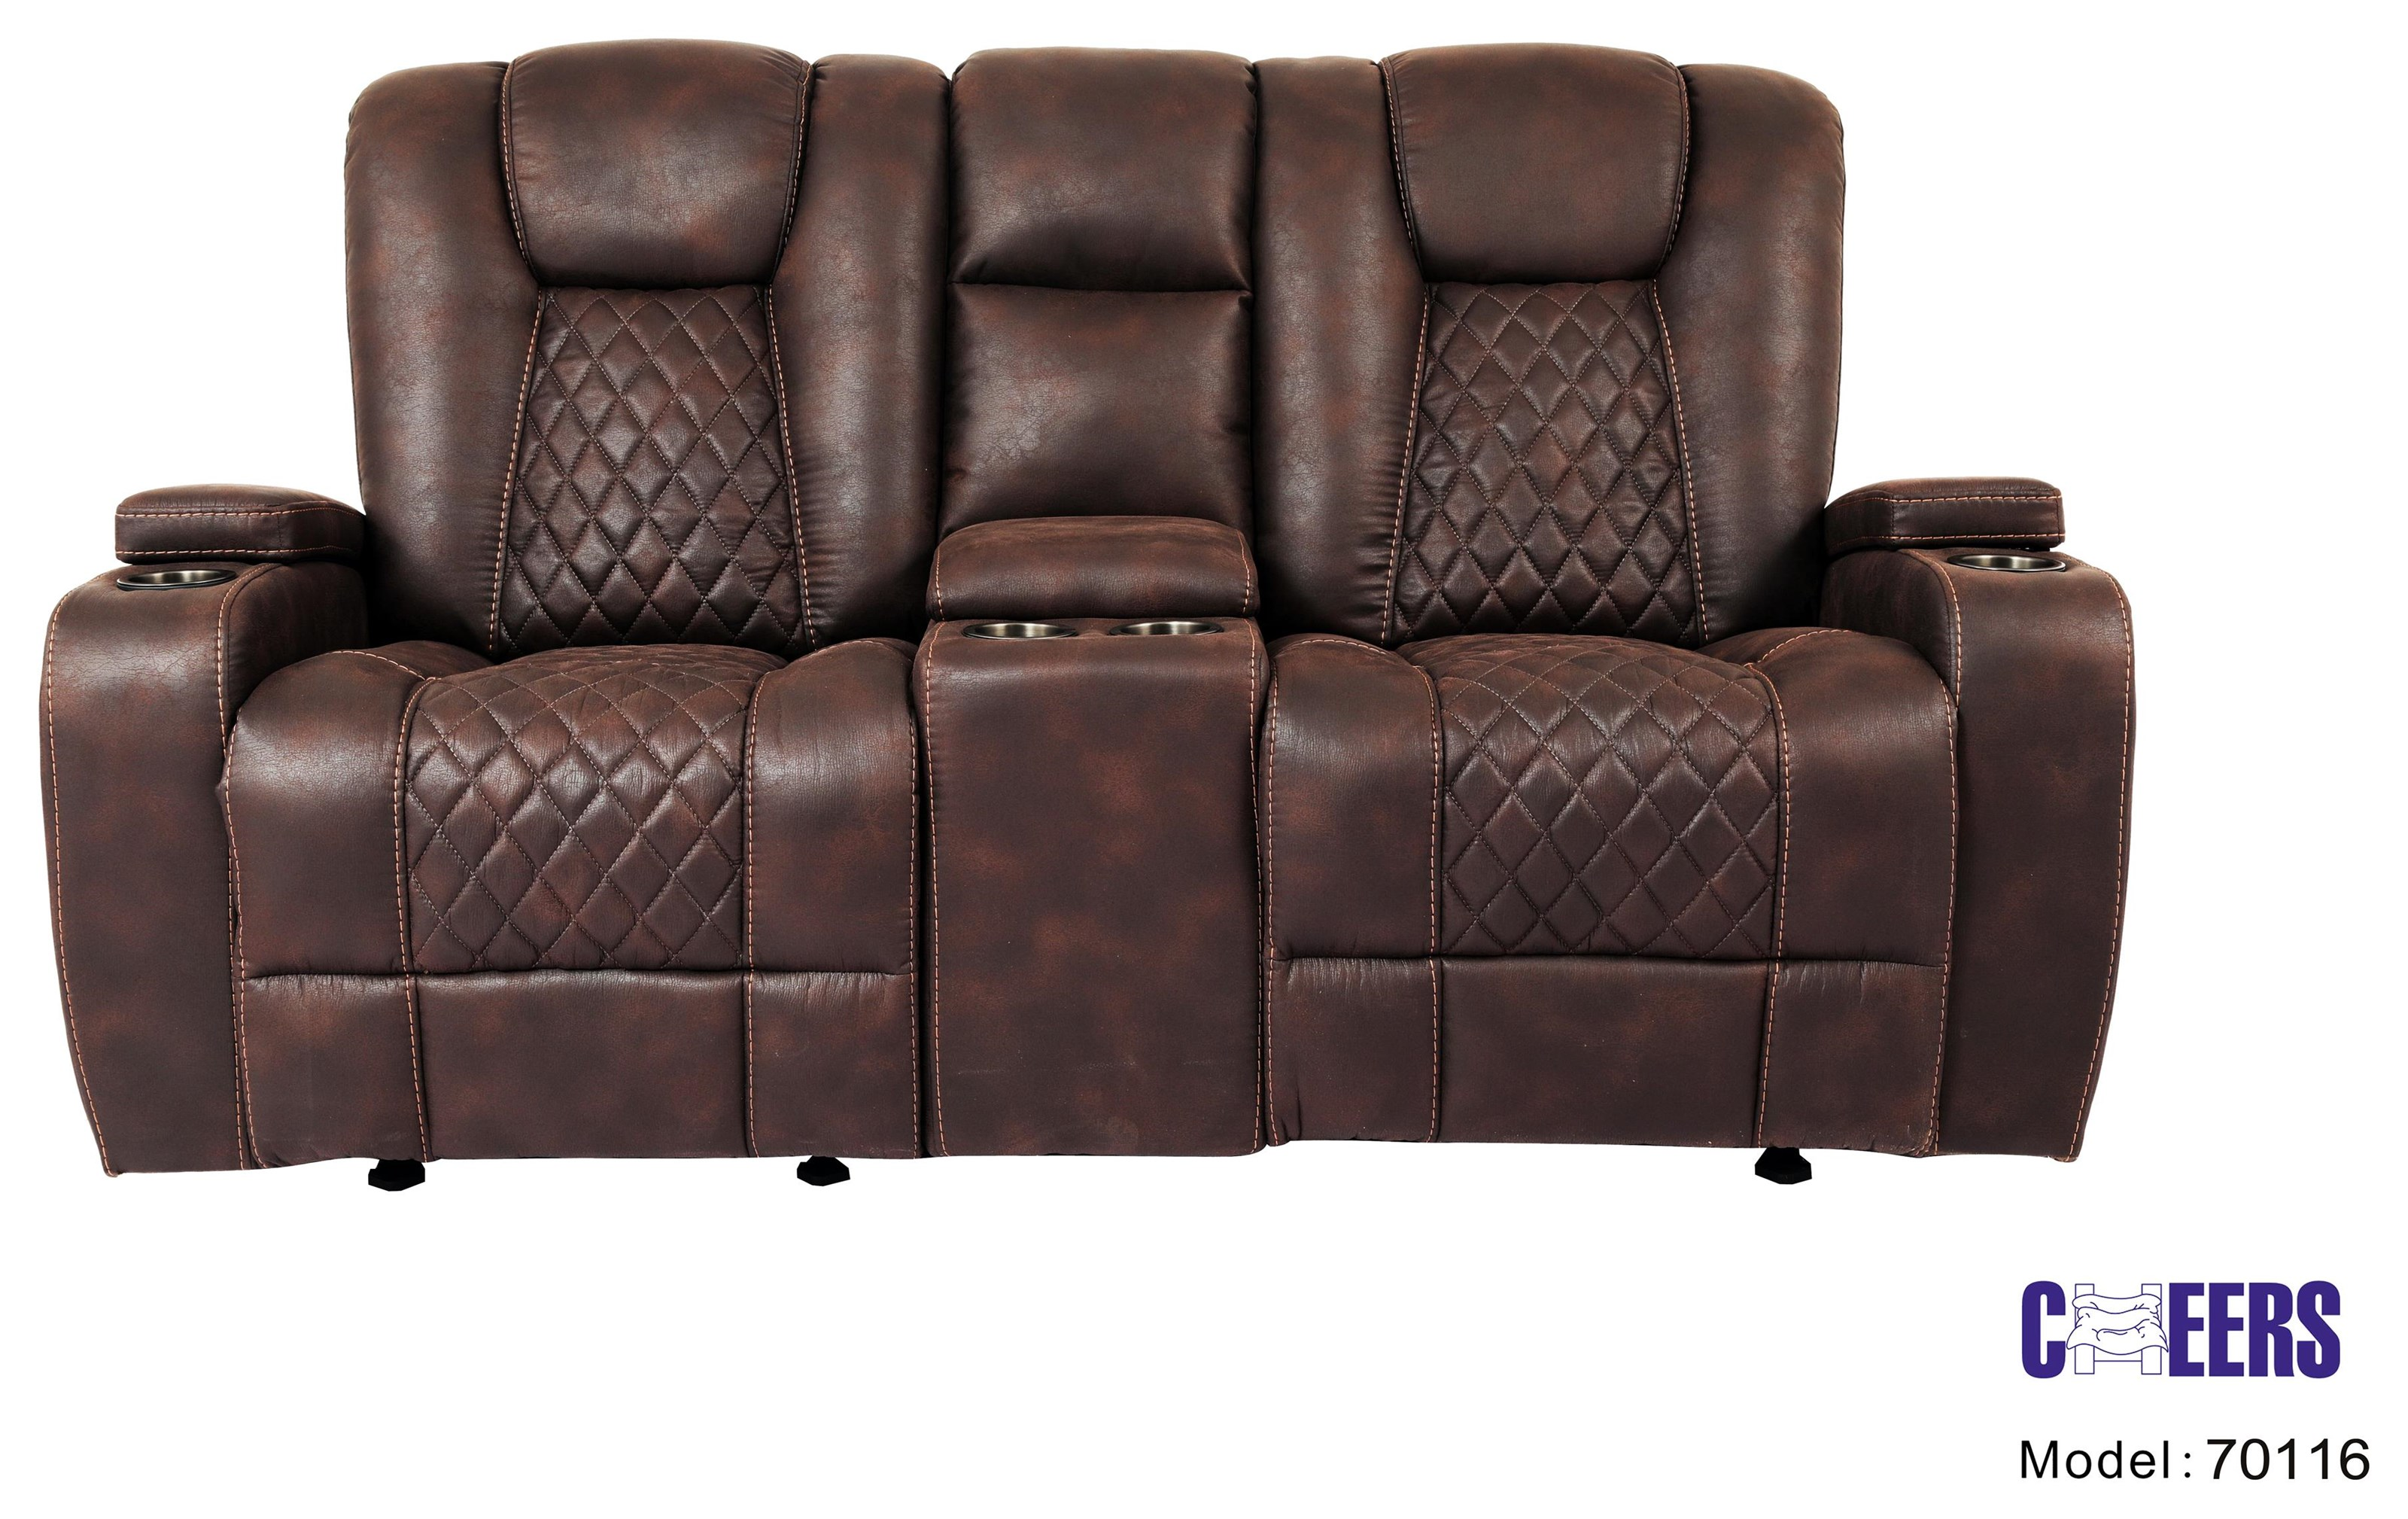 70116 Manual Transformer Glider Console Loveseat by Cheers at Westrich Furniture & Appliances